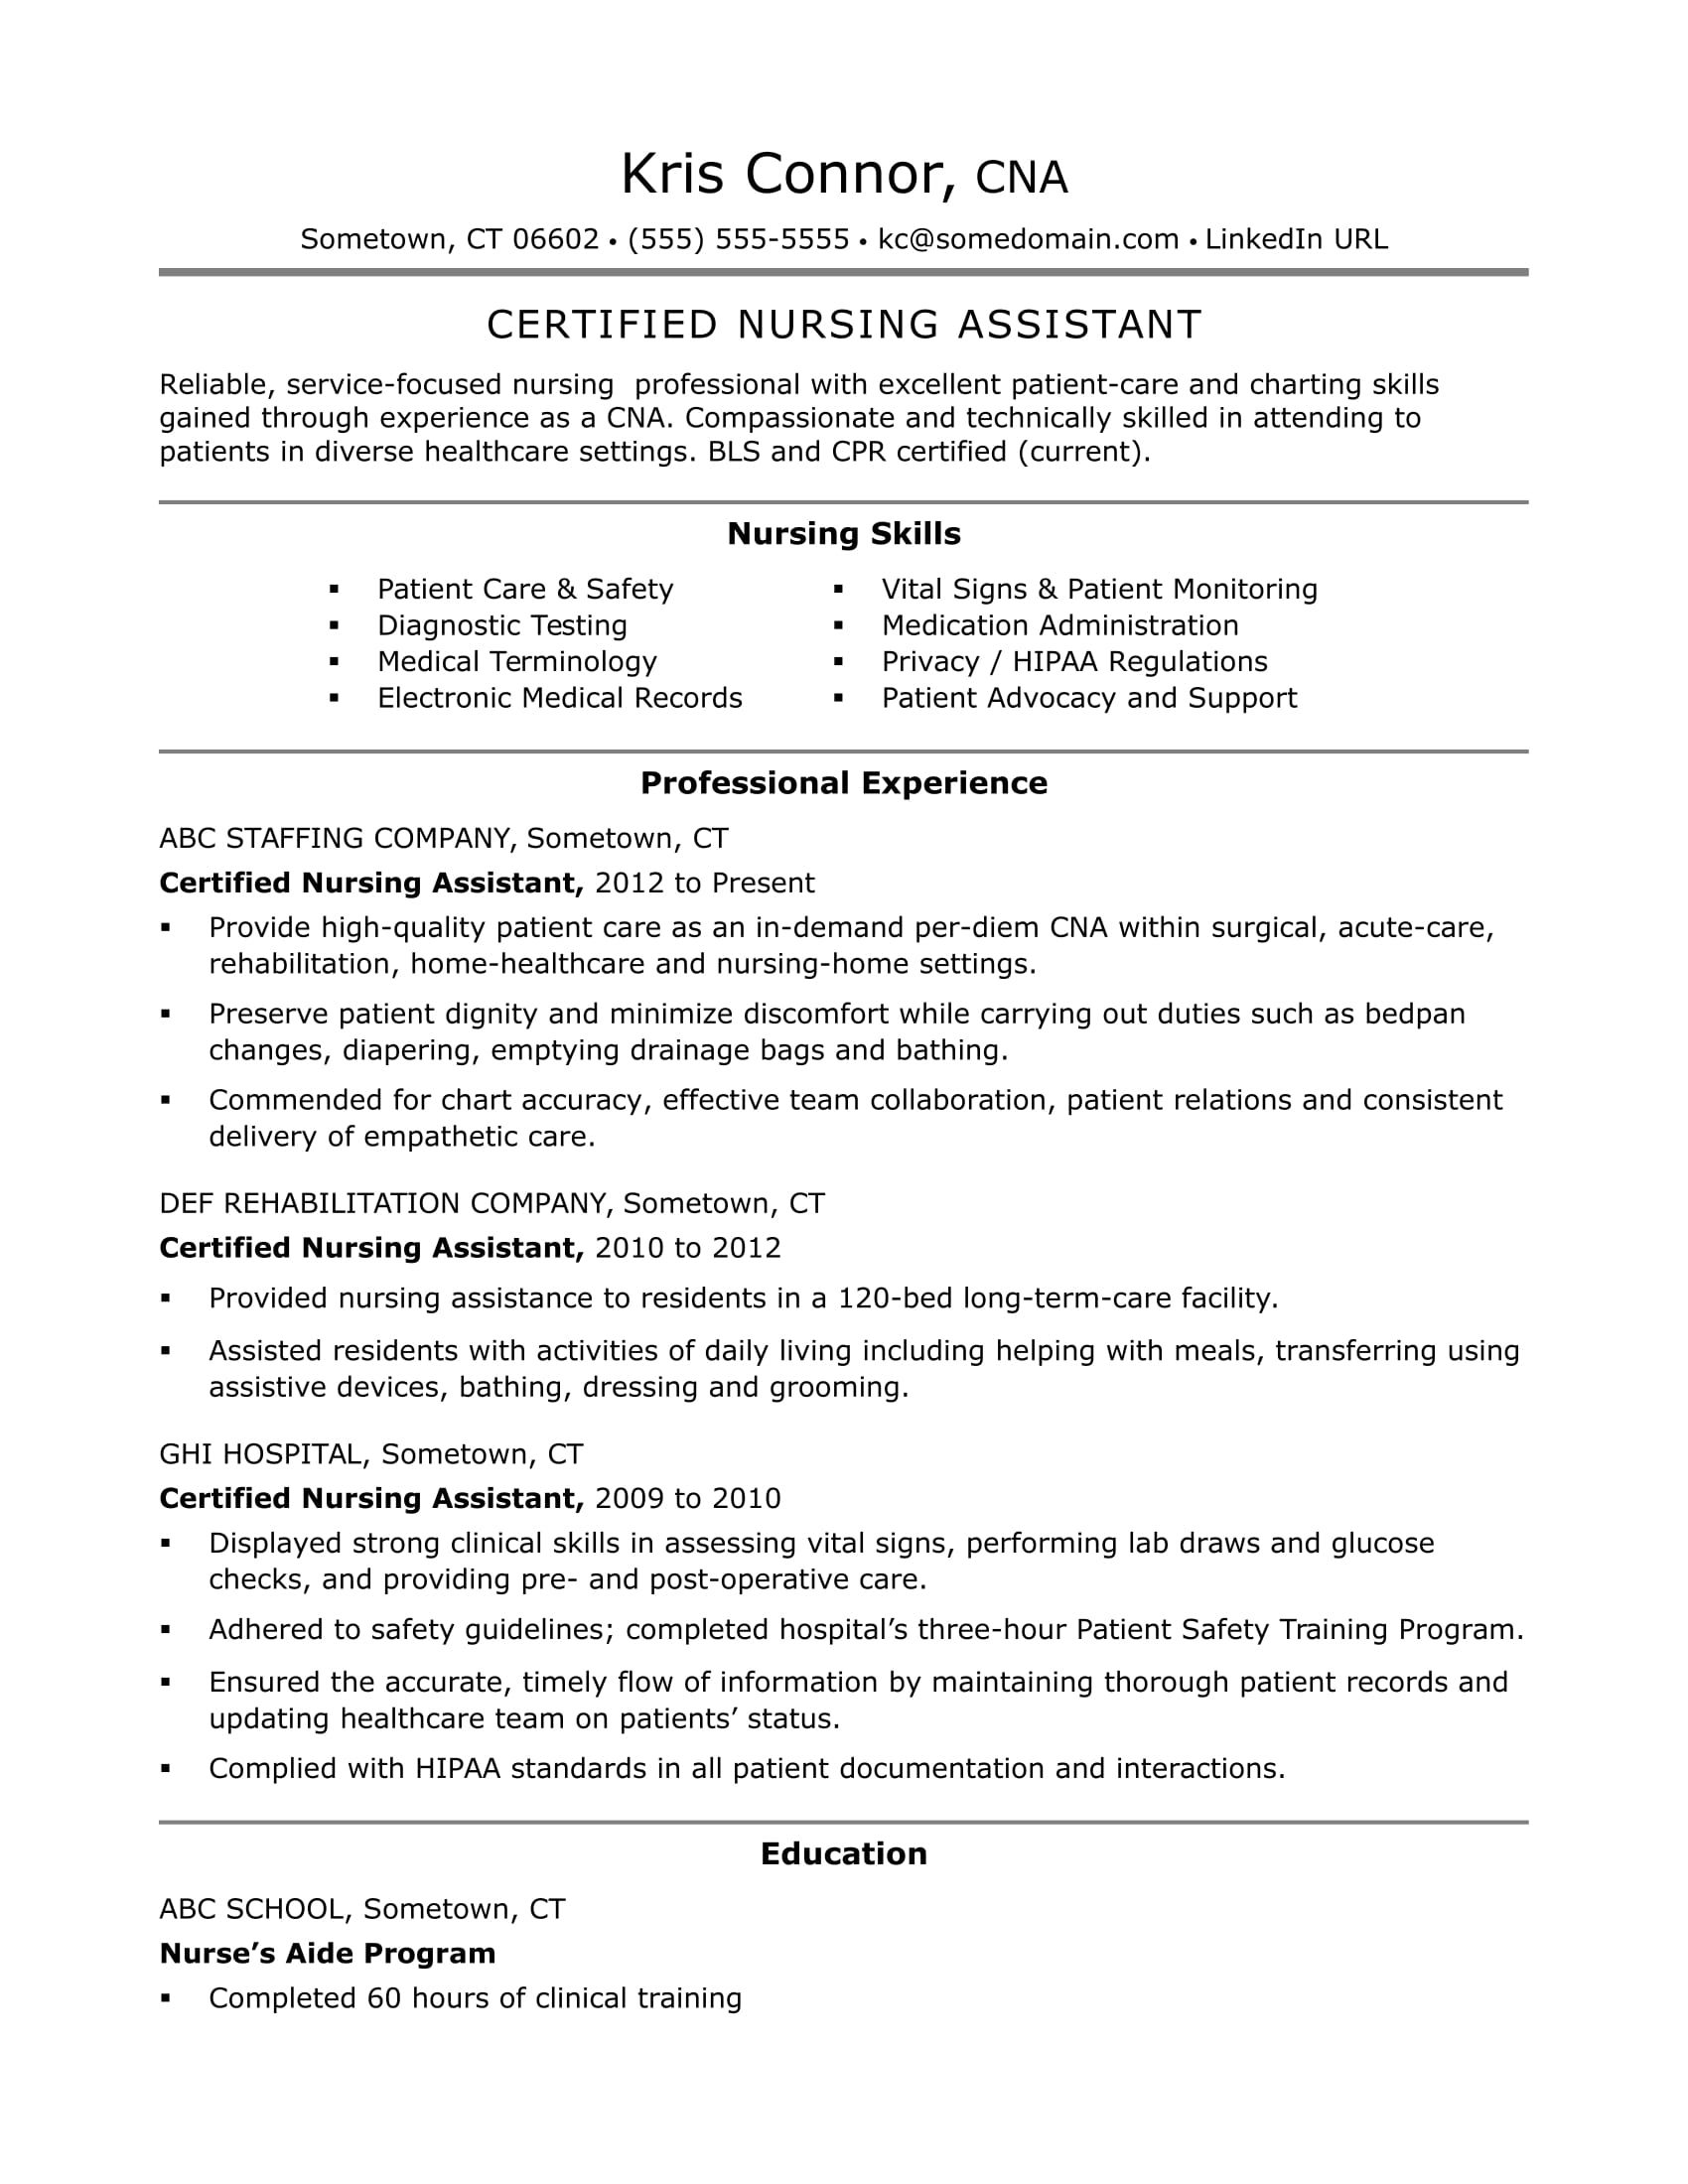 resume List Of Cna Skills For Resume cna resume examples skills for cnas monster com example